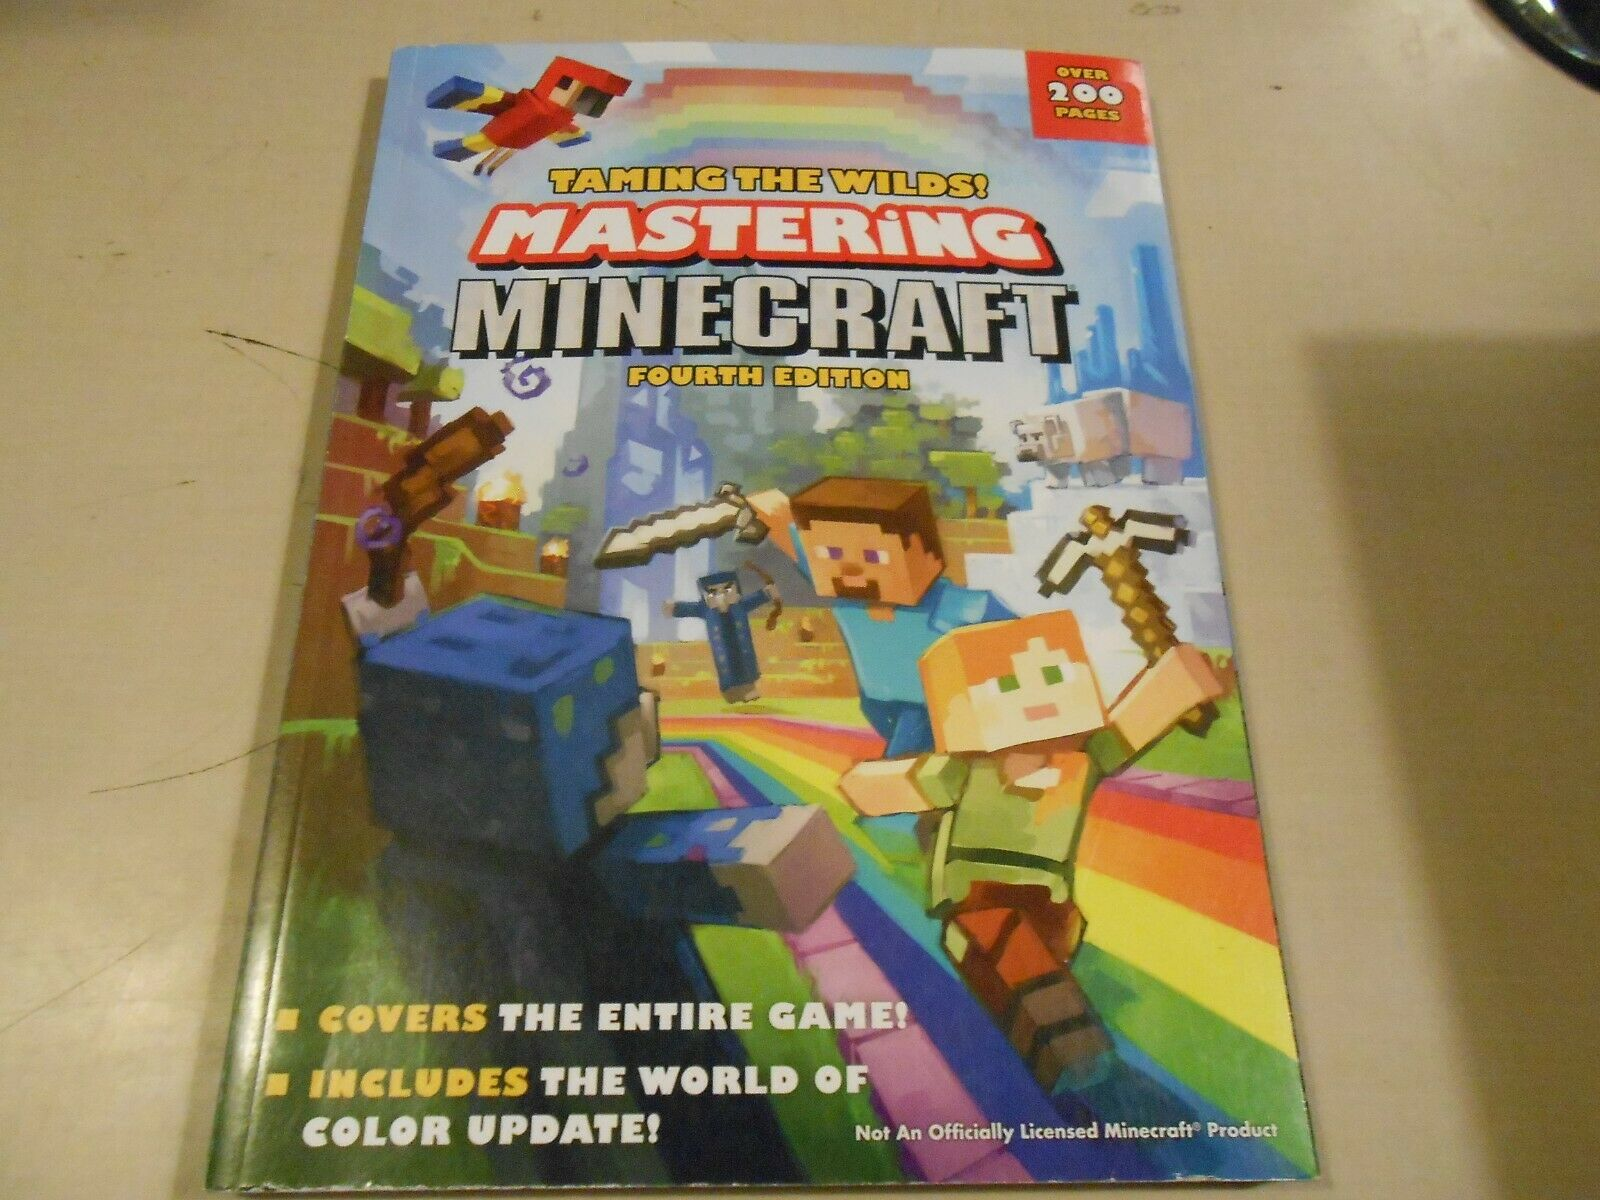 Taming The Wilds Mastering Minecraft Fourth Edition By Prima Games 2018 Paperback